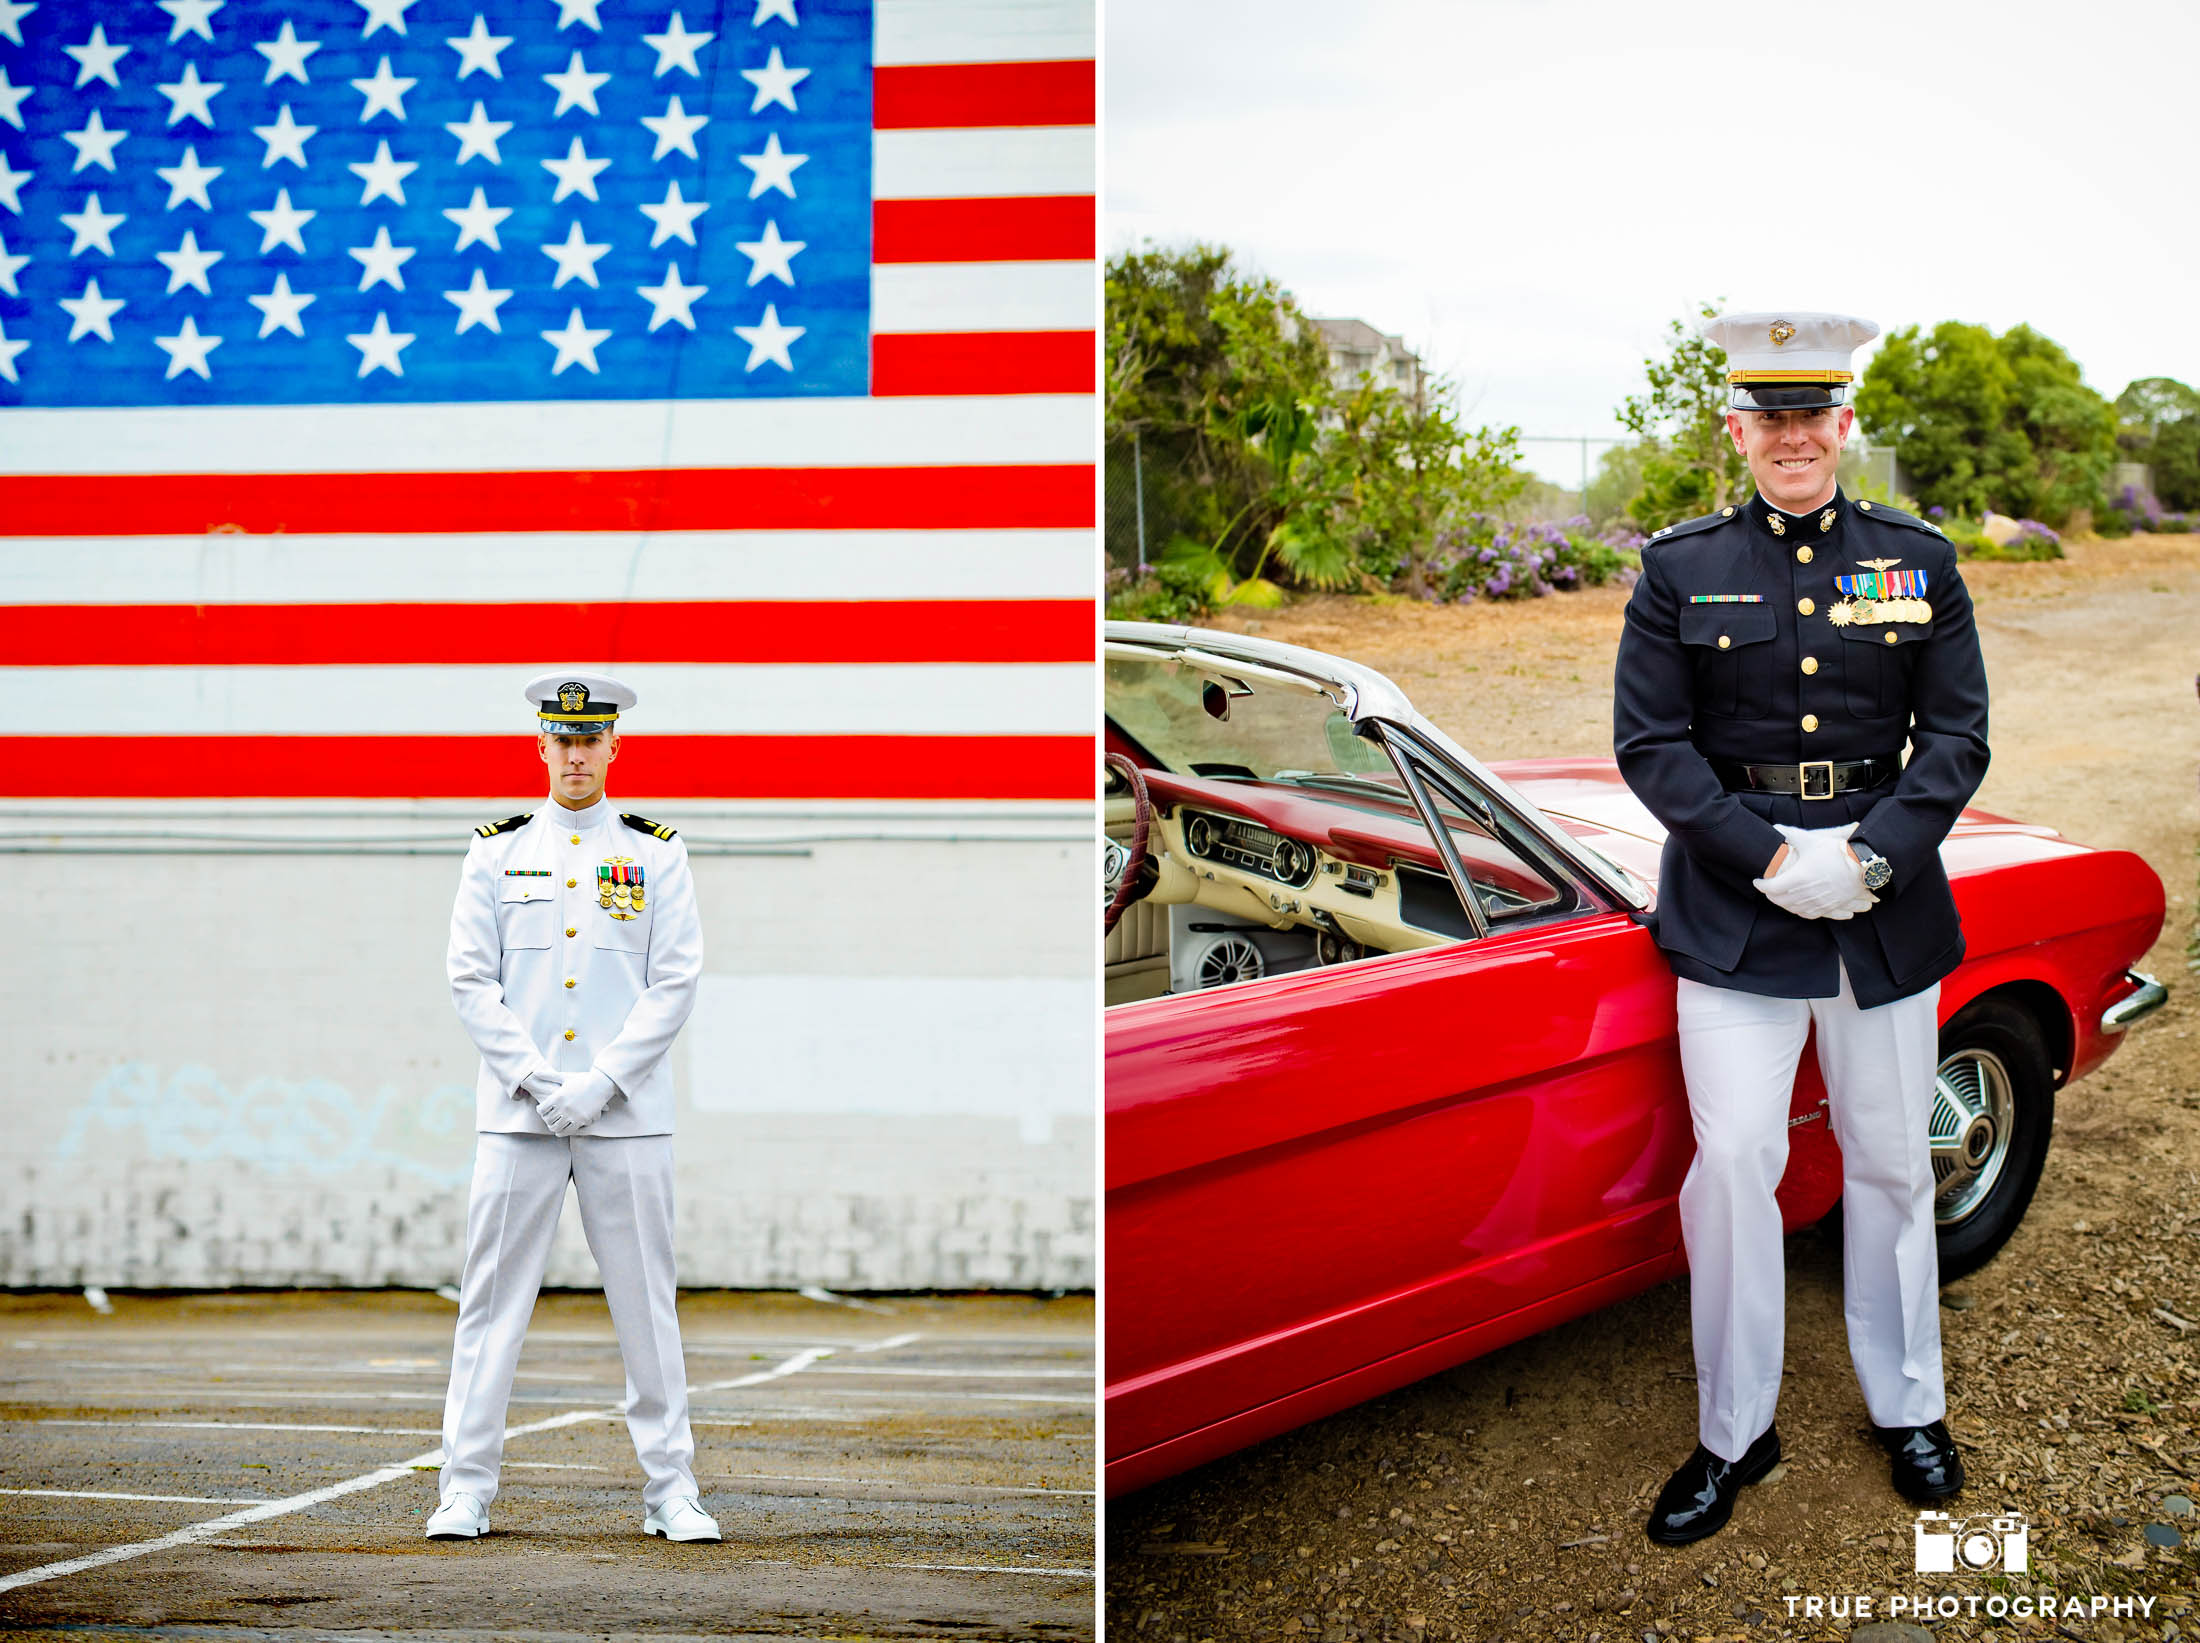 Military Groomsmen in uniform pose with classic cars and american flag